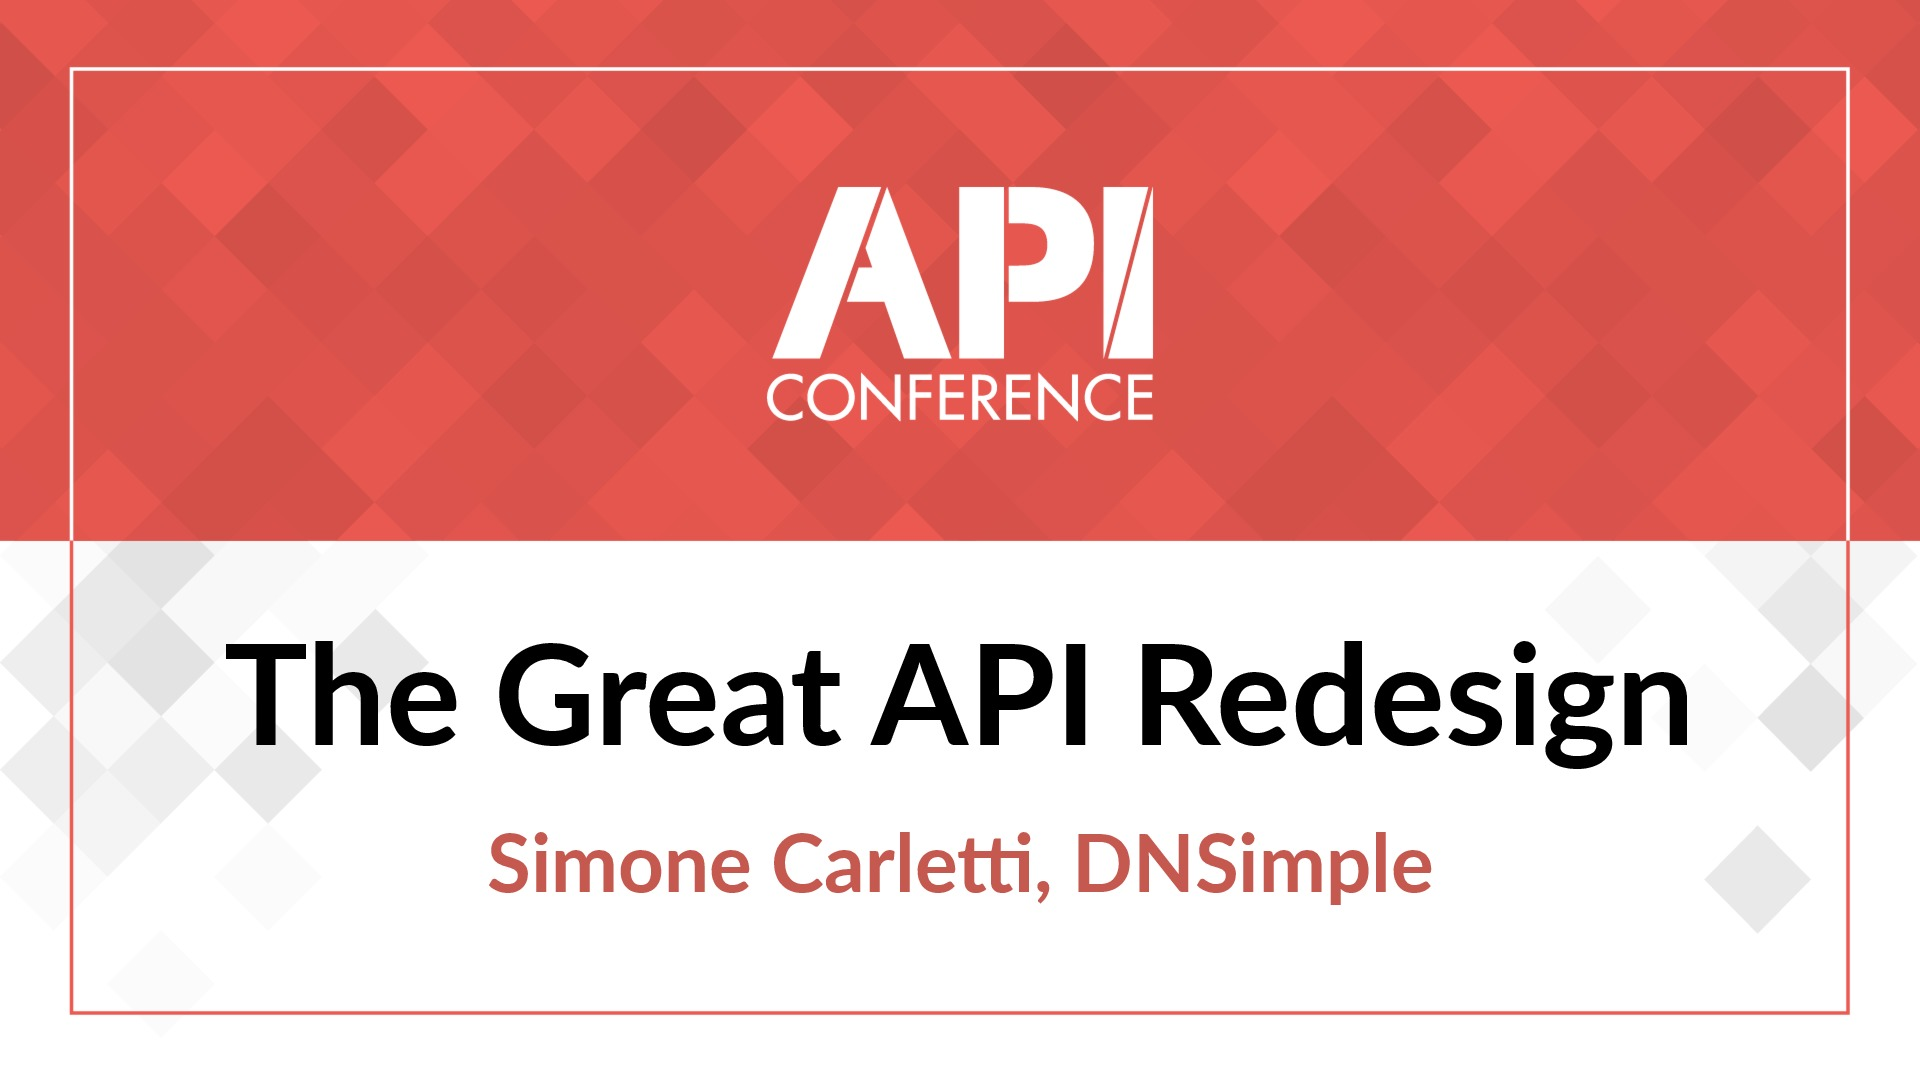 The Great API Redesign (API Conference 2018)